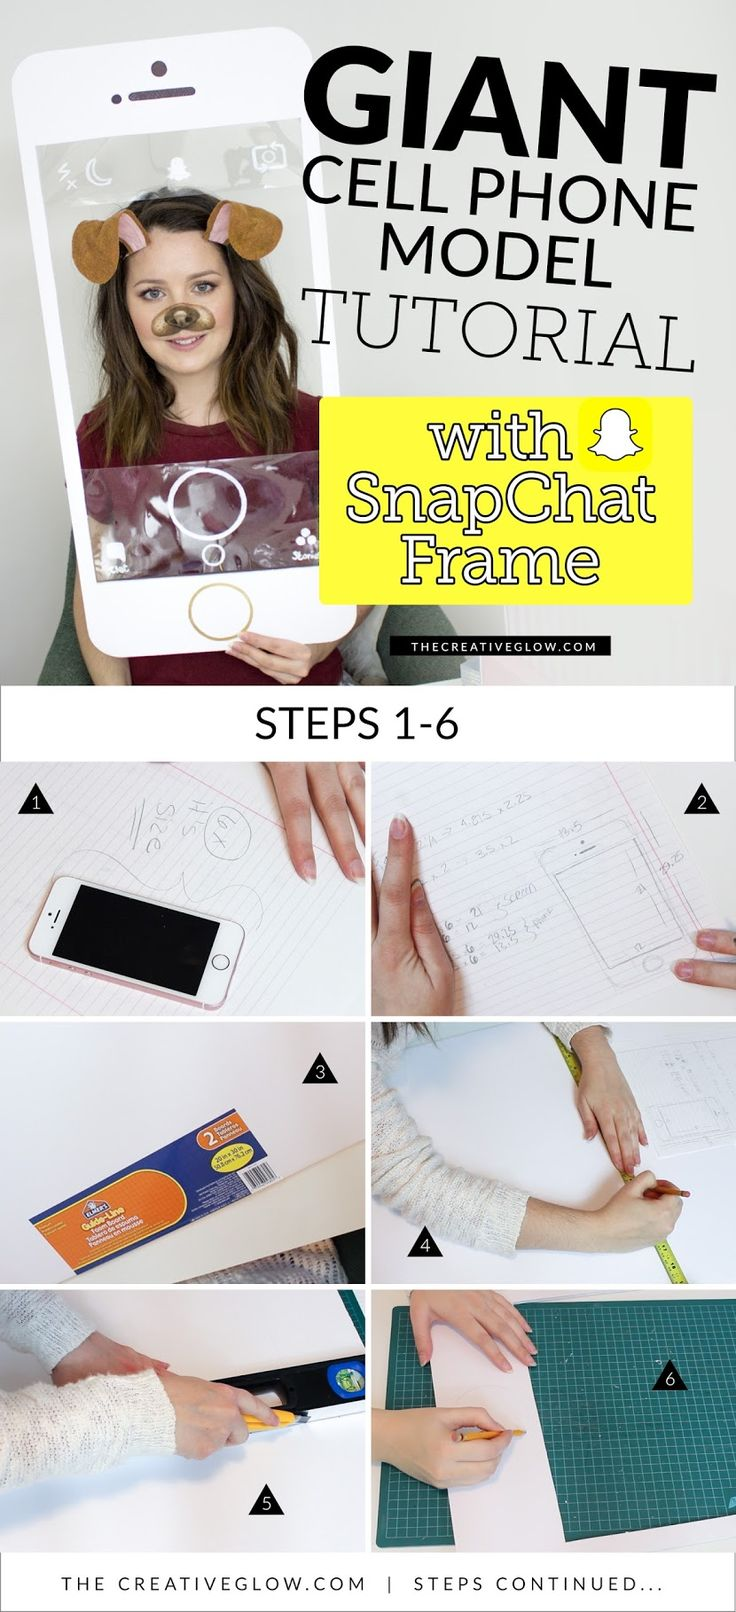 SnapChat Puppy & Deer Filter Costumes - PART 2   Showing you how to make the Puppy and Deer Ears and the Giant Cell Phone model.